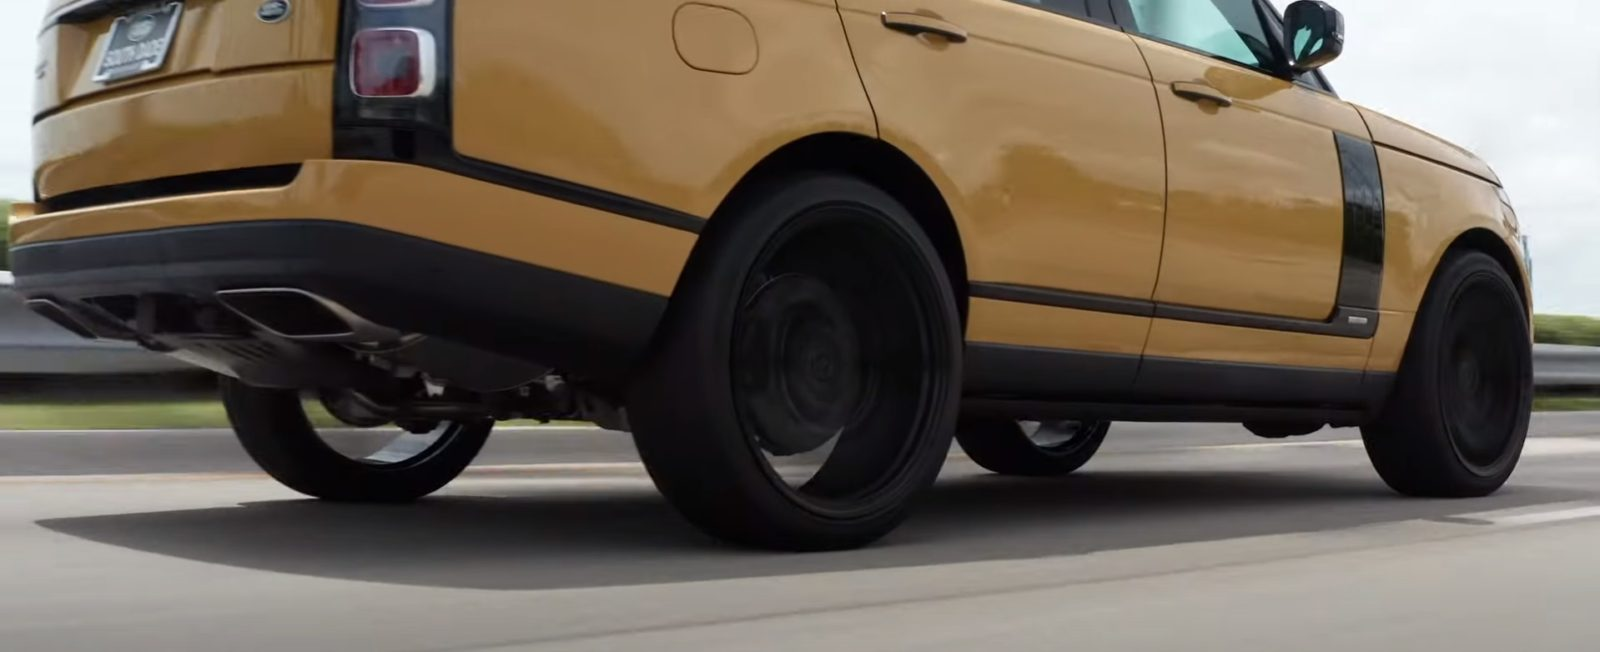 yellow-range-rover-fifty-edition-on-24-inch-vossen-wheels-looks-like-it's-floating